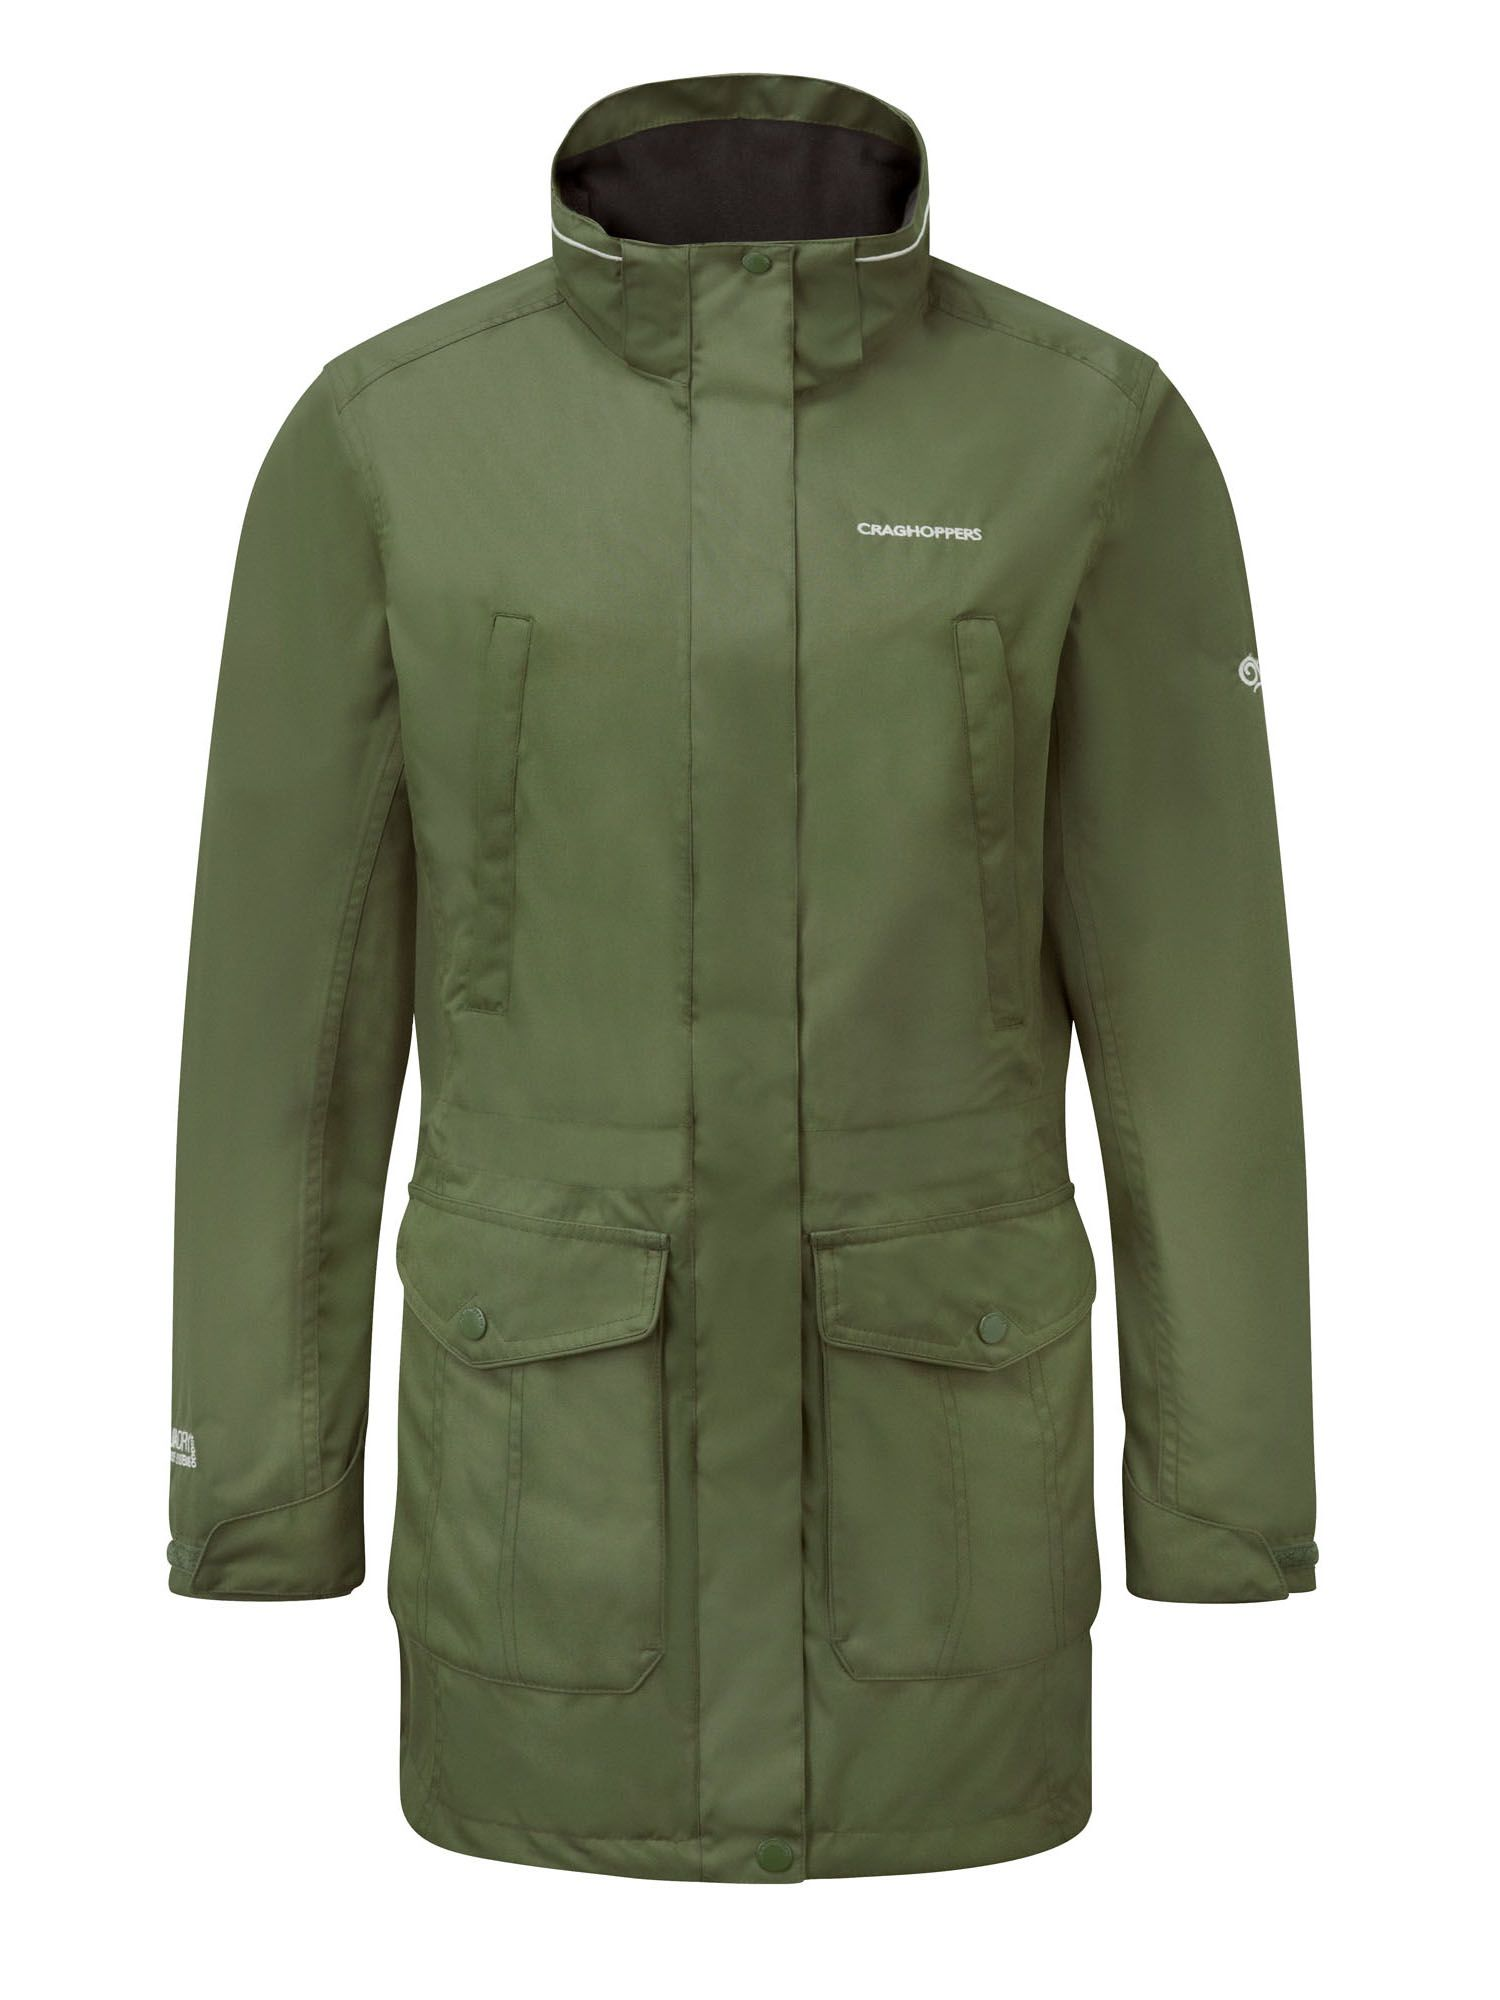 Craghoppers Madigan III Long Waterproof Jacket, Green